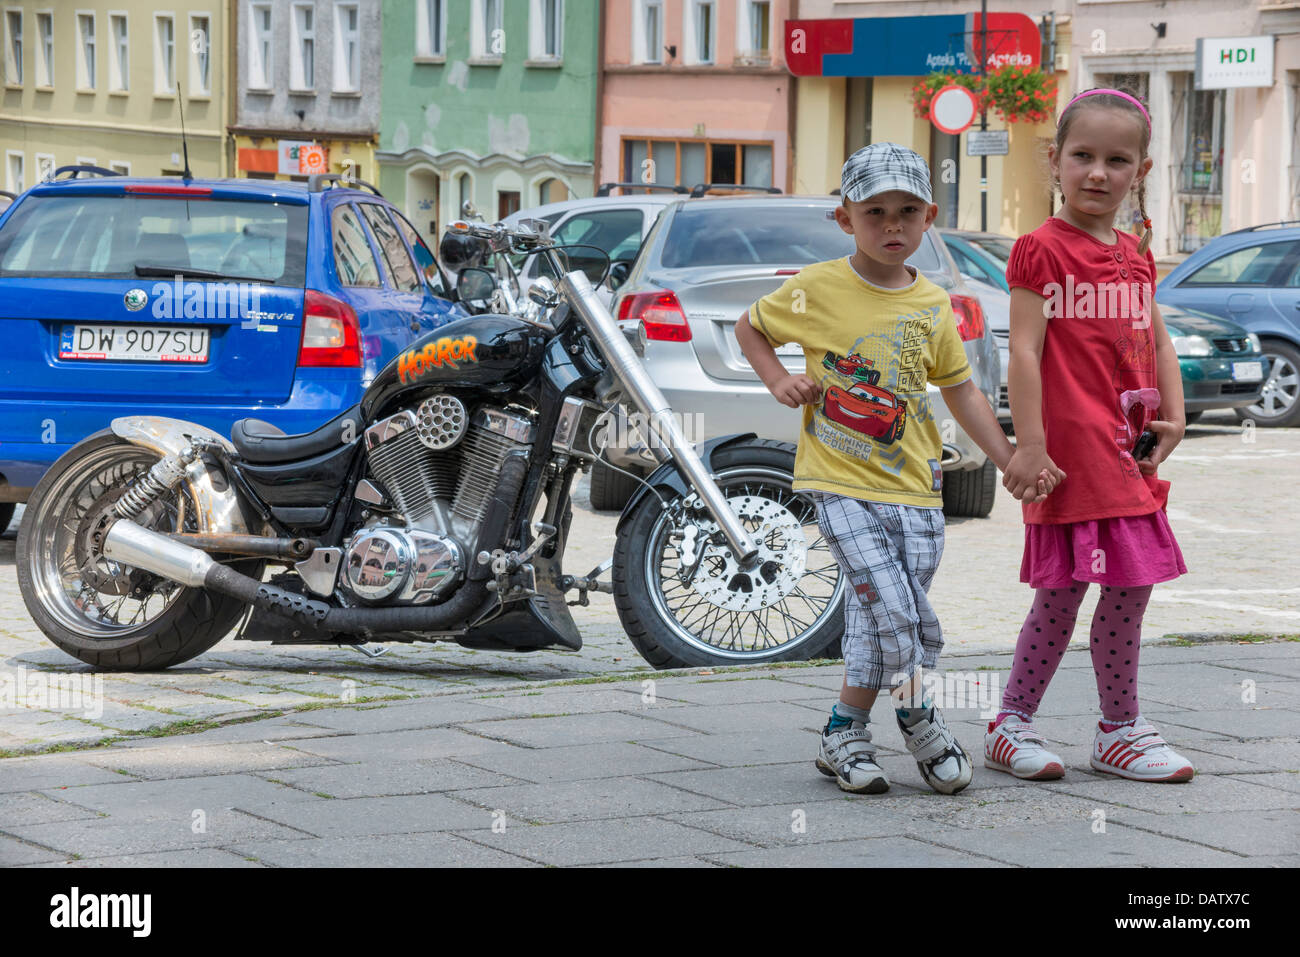 Children and 'Horror' modified motorcycle in Bolkow, Silesia, Poland - Stock Image